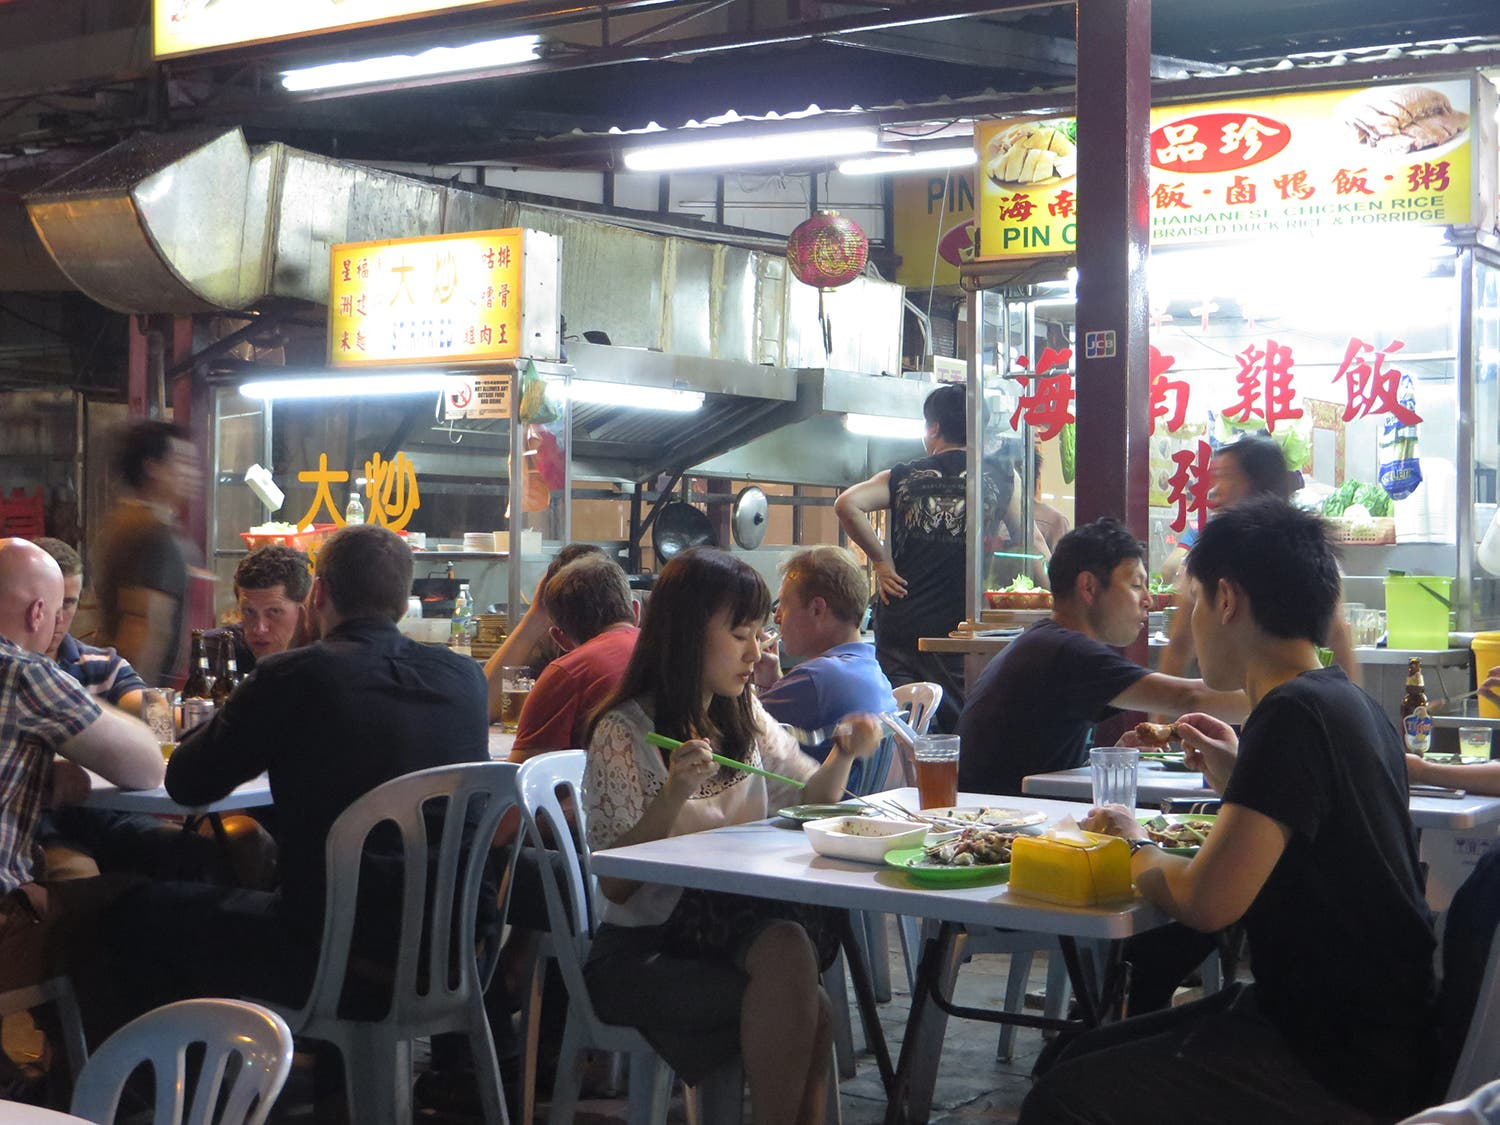 Customers enjoy their food in a Malaysian street (Photo: Peter Harrison)